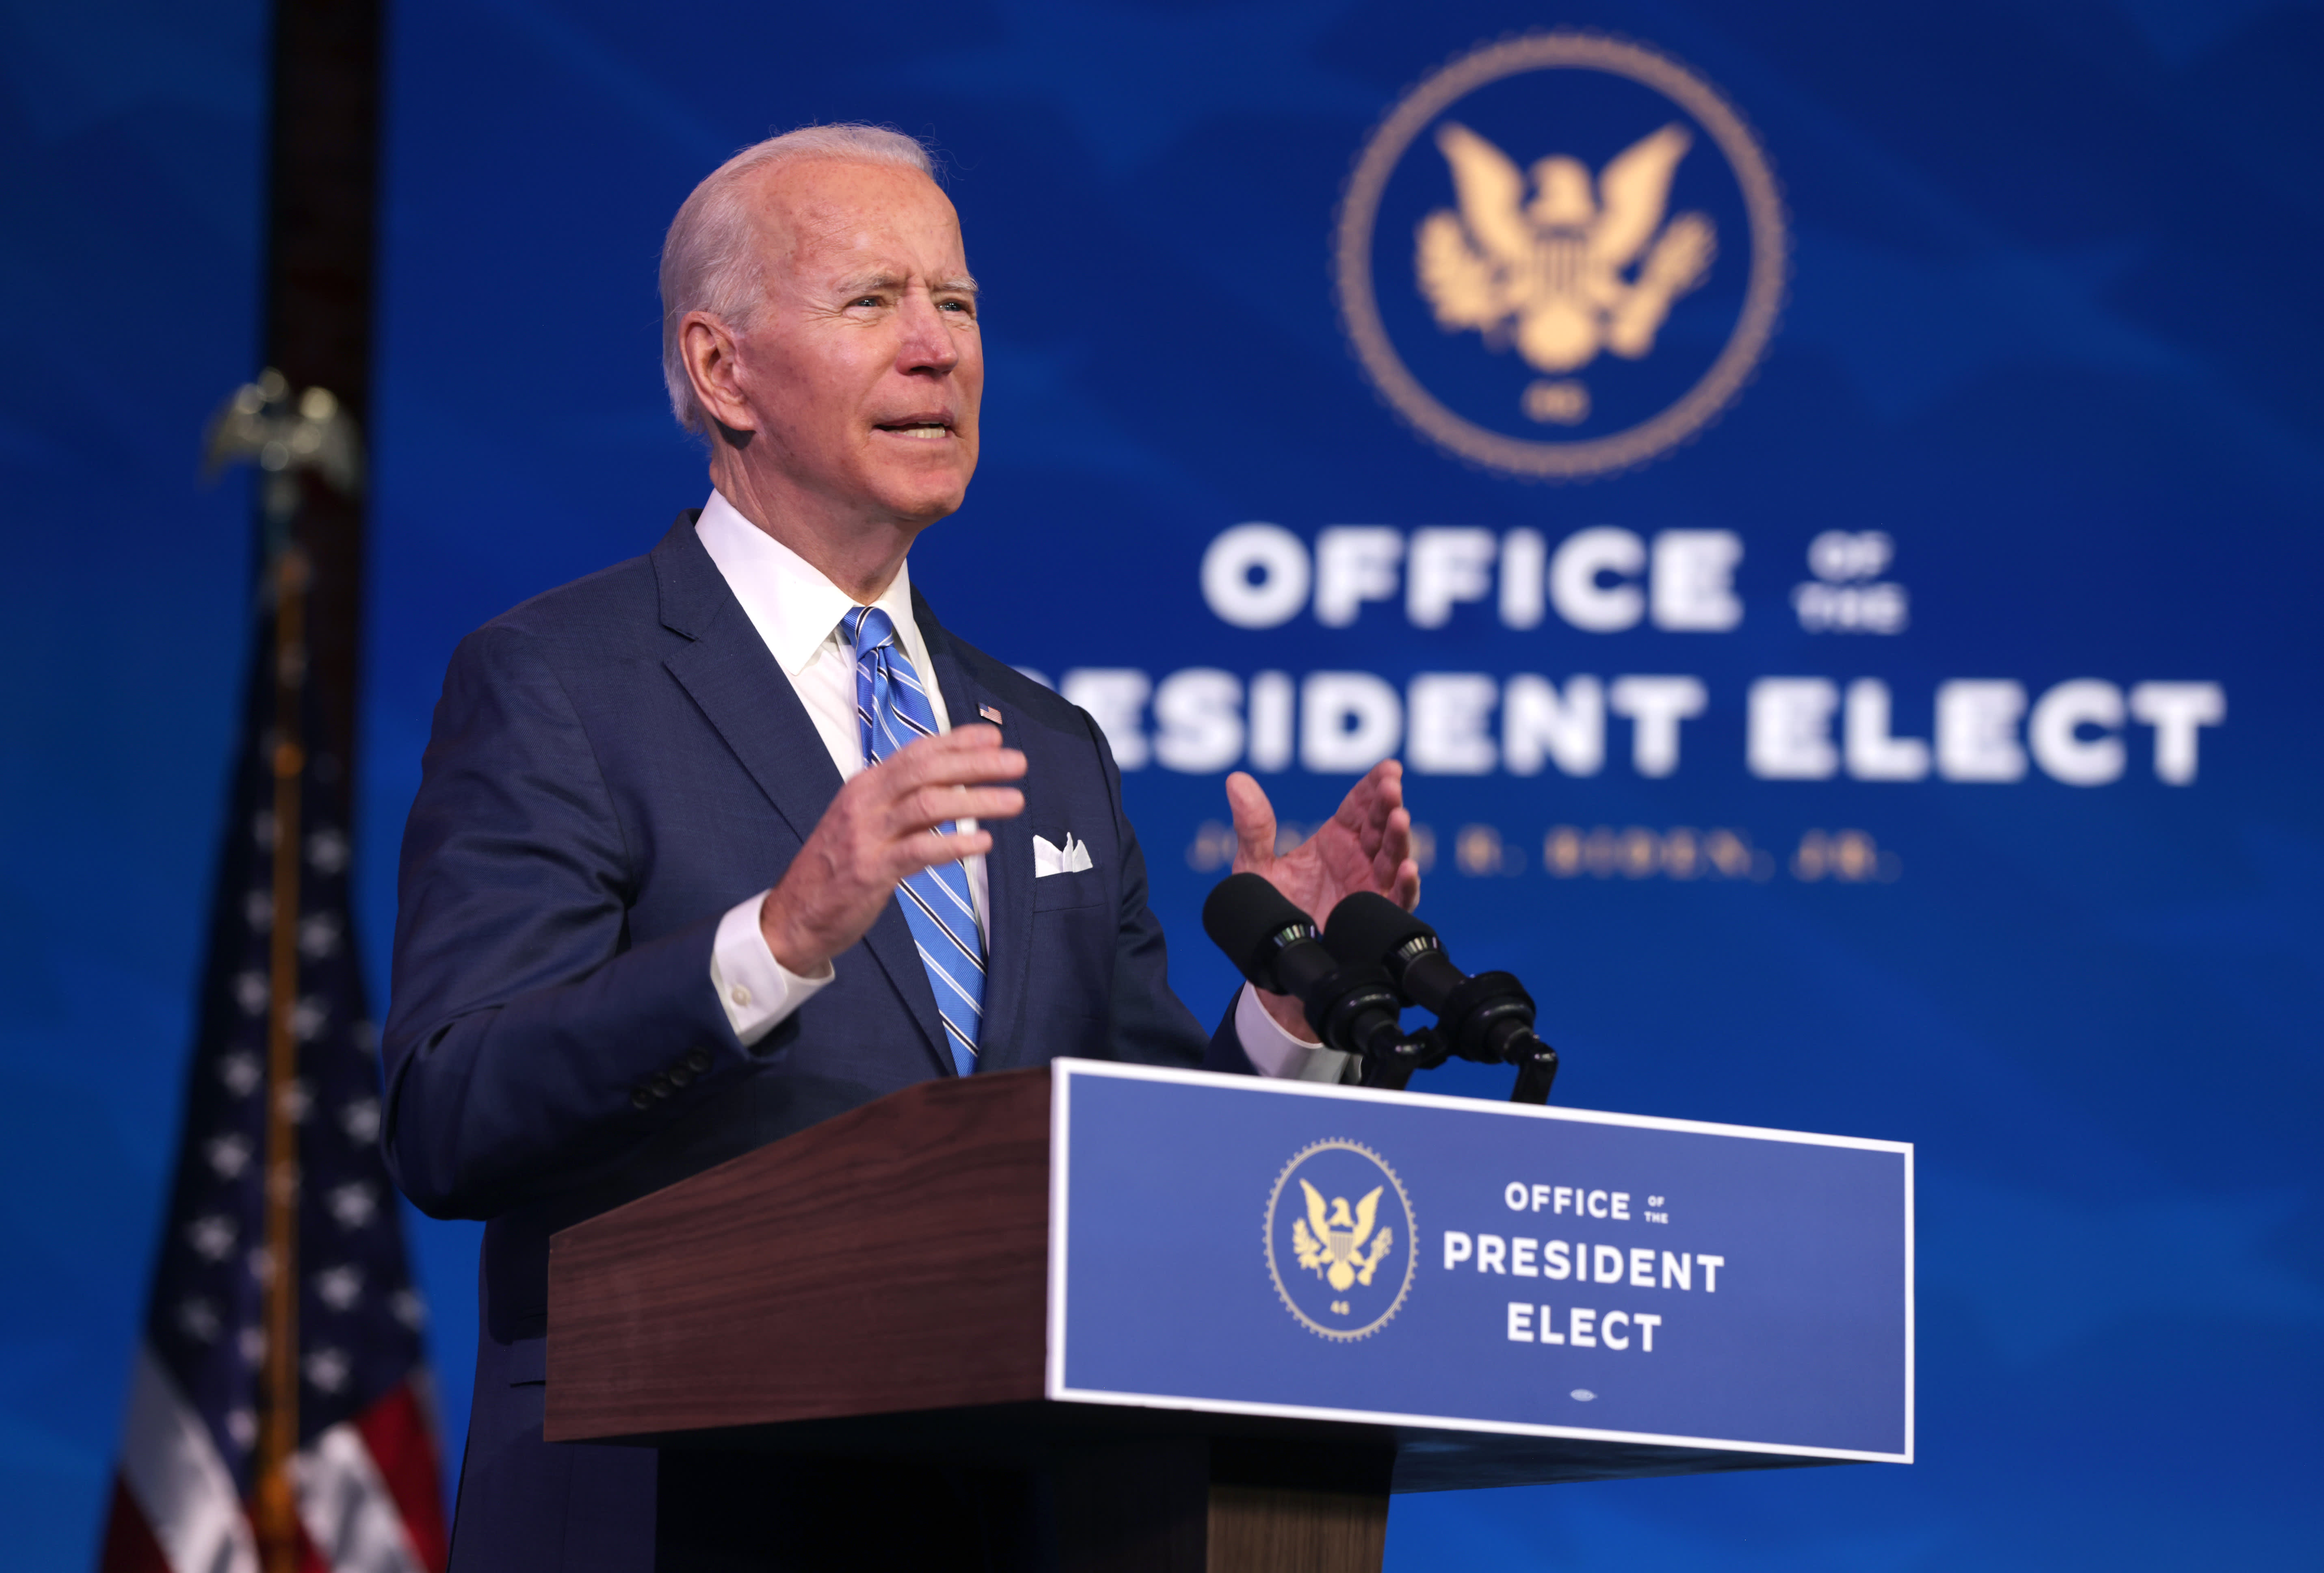 Biden's stimulus plan may drive out funds from Asia to the U.S., JPMorgan says